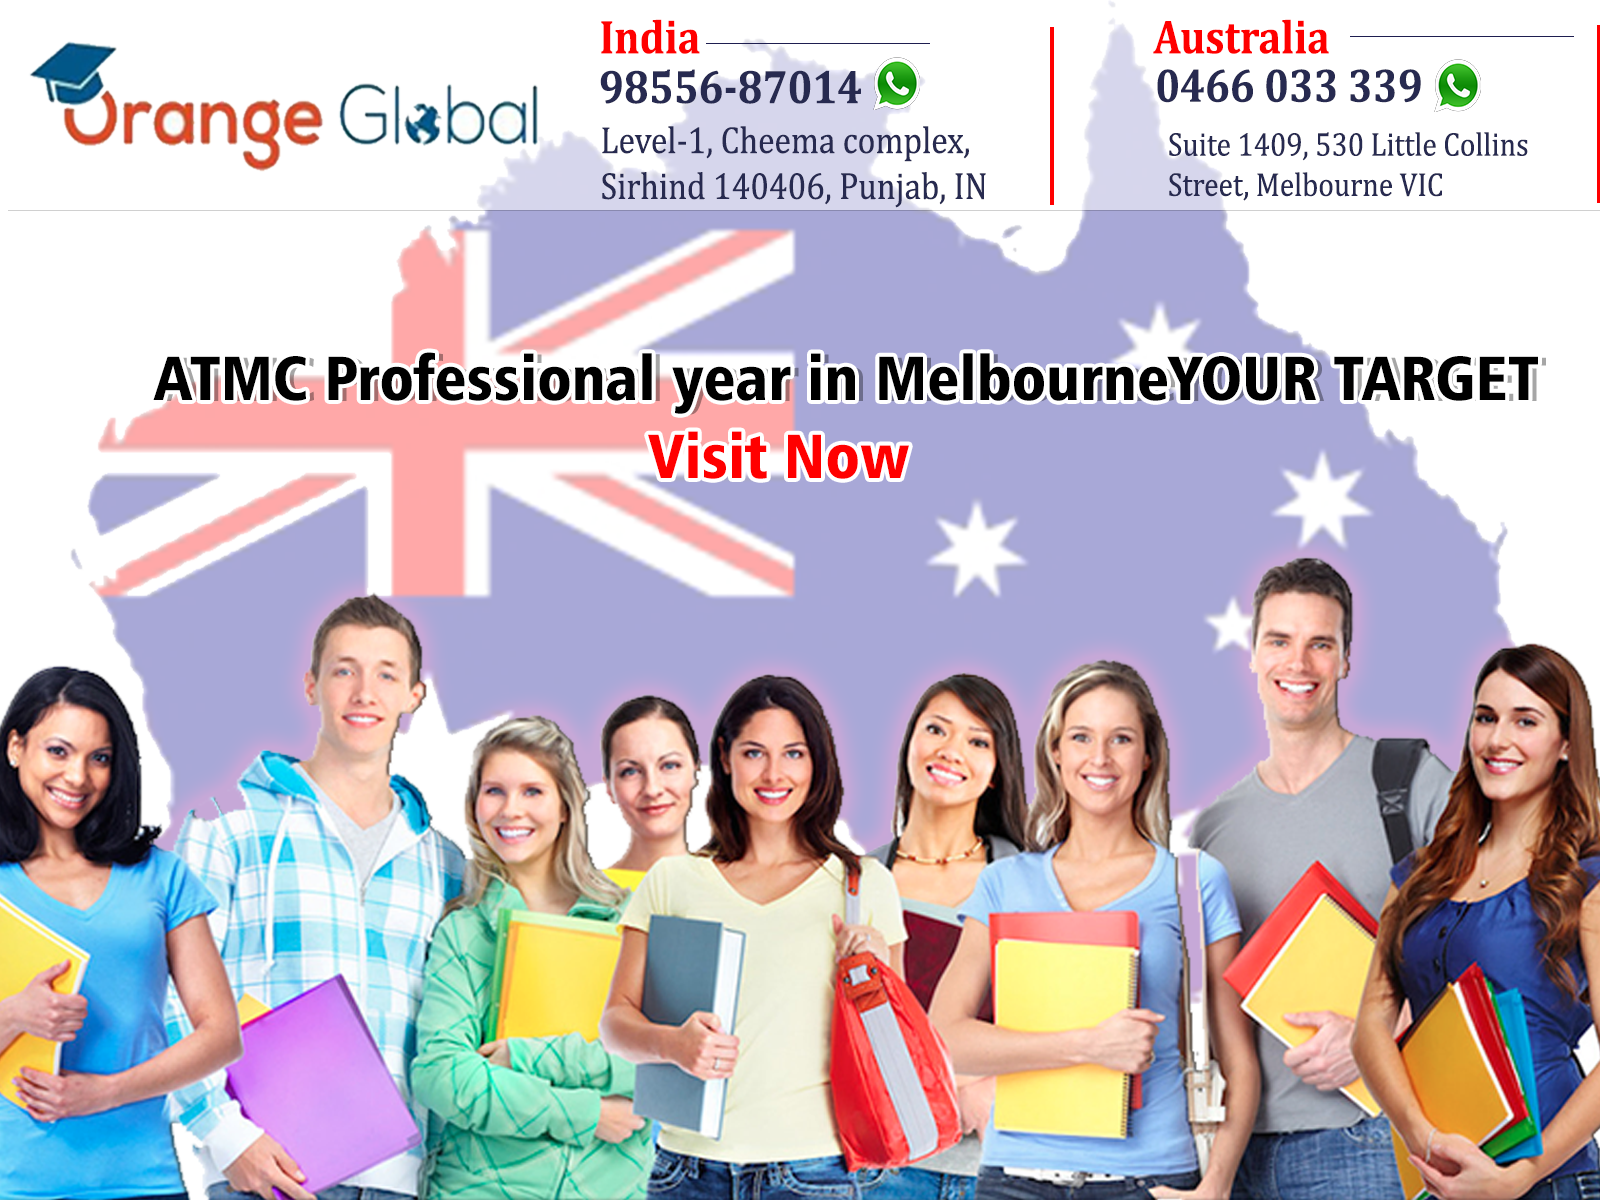 ATMC Professional year in Melbourne